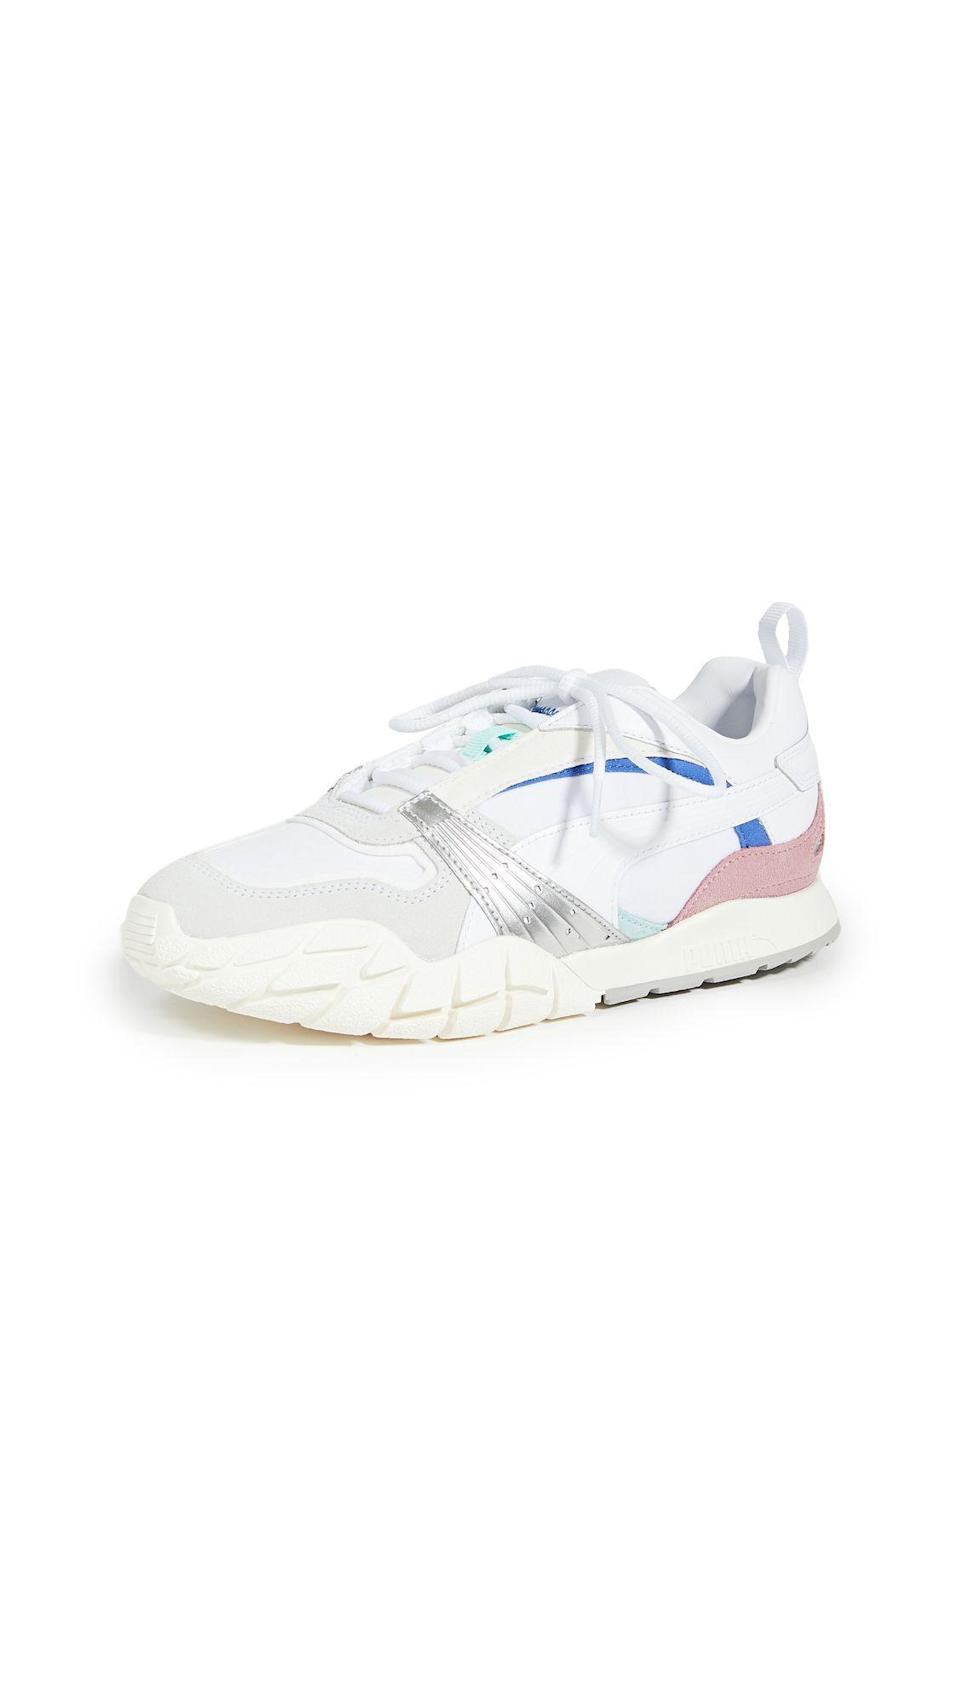 """<p><strong>PUMA</strong></p><p>shopbop.com</p><p><a href=""""https://go.redirectingat.com?id=74968X1596630&url=https%3A%2F%2Fwww.shopbop.com%2Fkyron-awakening-sneakers-puma%2Fvp%2Fv%3D1%2F1518392219.htm&sref=https%3A%2F%2Fwww.harpersbazaar.com%2Ffashion%2Ftrends%2Fg34632594%2Fshopbop-holiday-sale%2F"""" rel=""""nofollow noopener"""" target=""""_blank"""" data-ylk=""""slk:Shop Now"""" class=""""link rapid-noclick-resp"""">Shop Now</a></p><p><strong><del>$90</del> $63 (34% off)</strong> </p><p>Add some sporty flare to your daily sanity walks. <br></p>"""